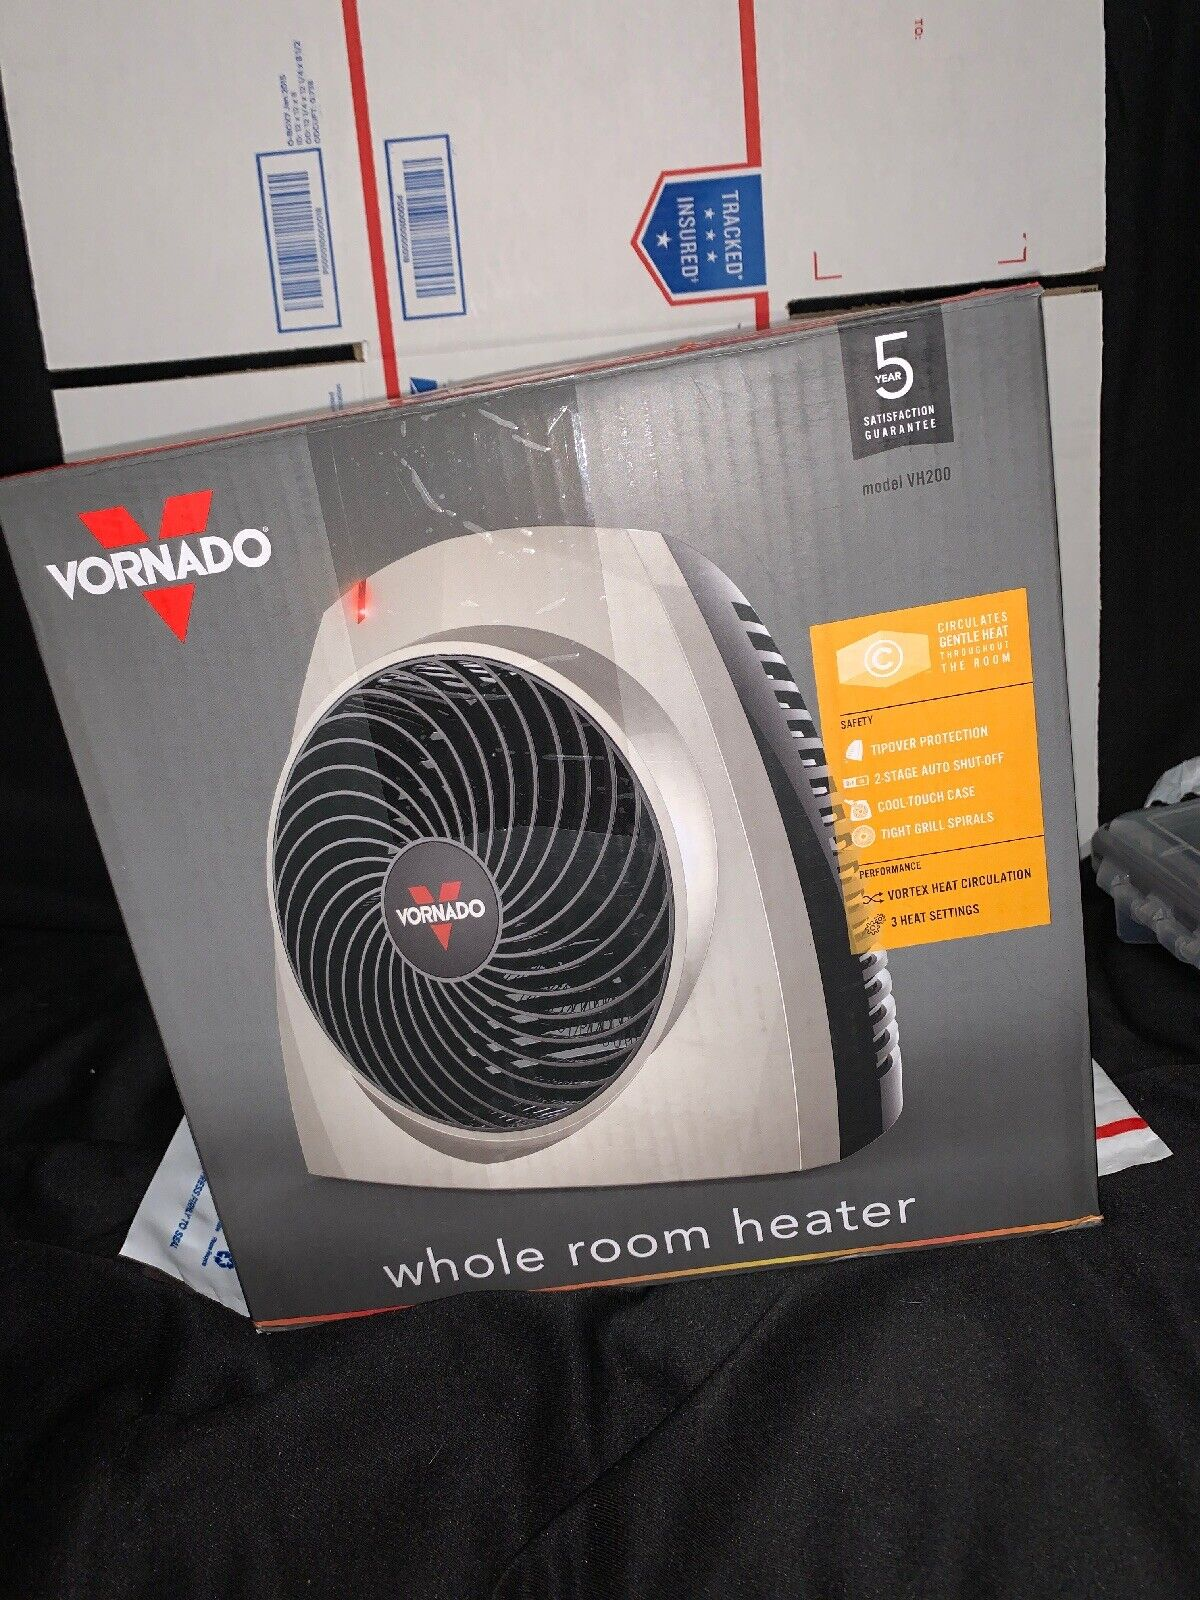 Vornado VH200 Whole Room Heater with